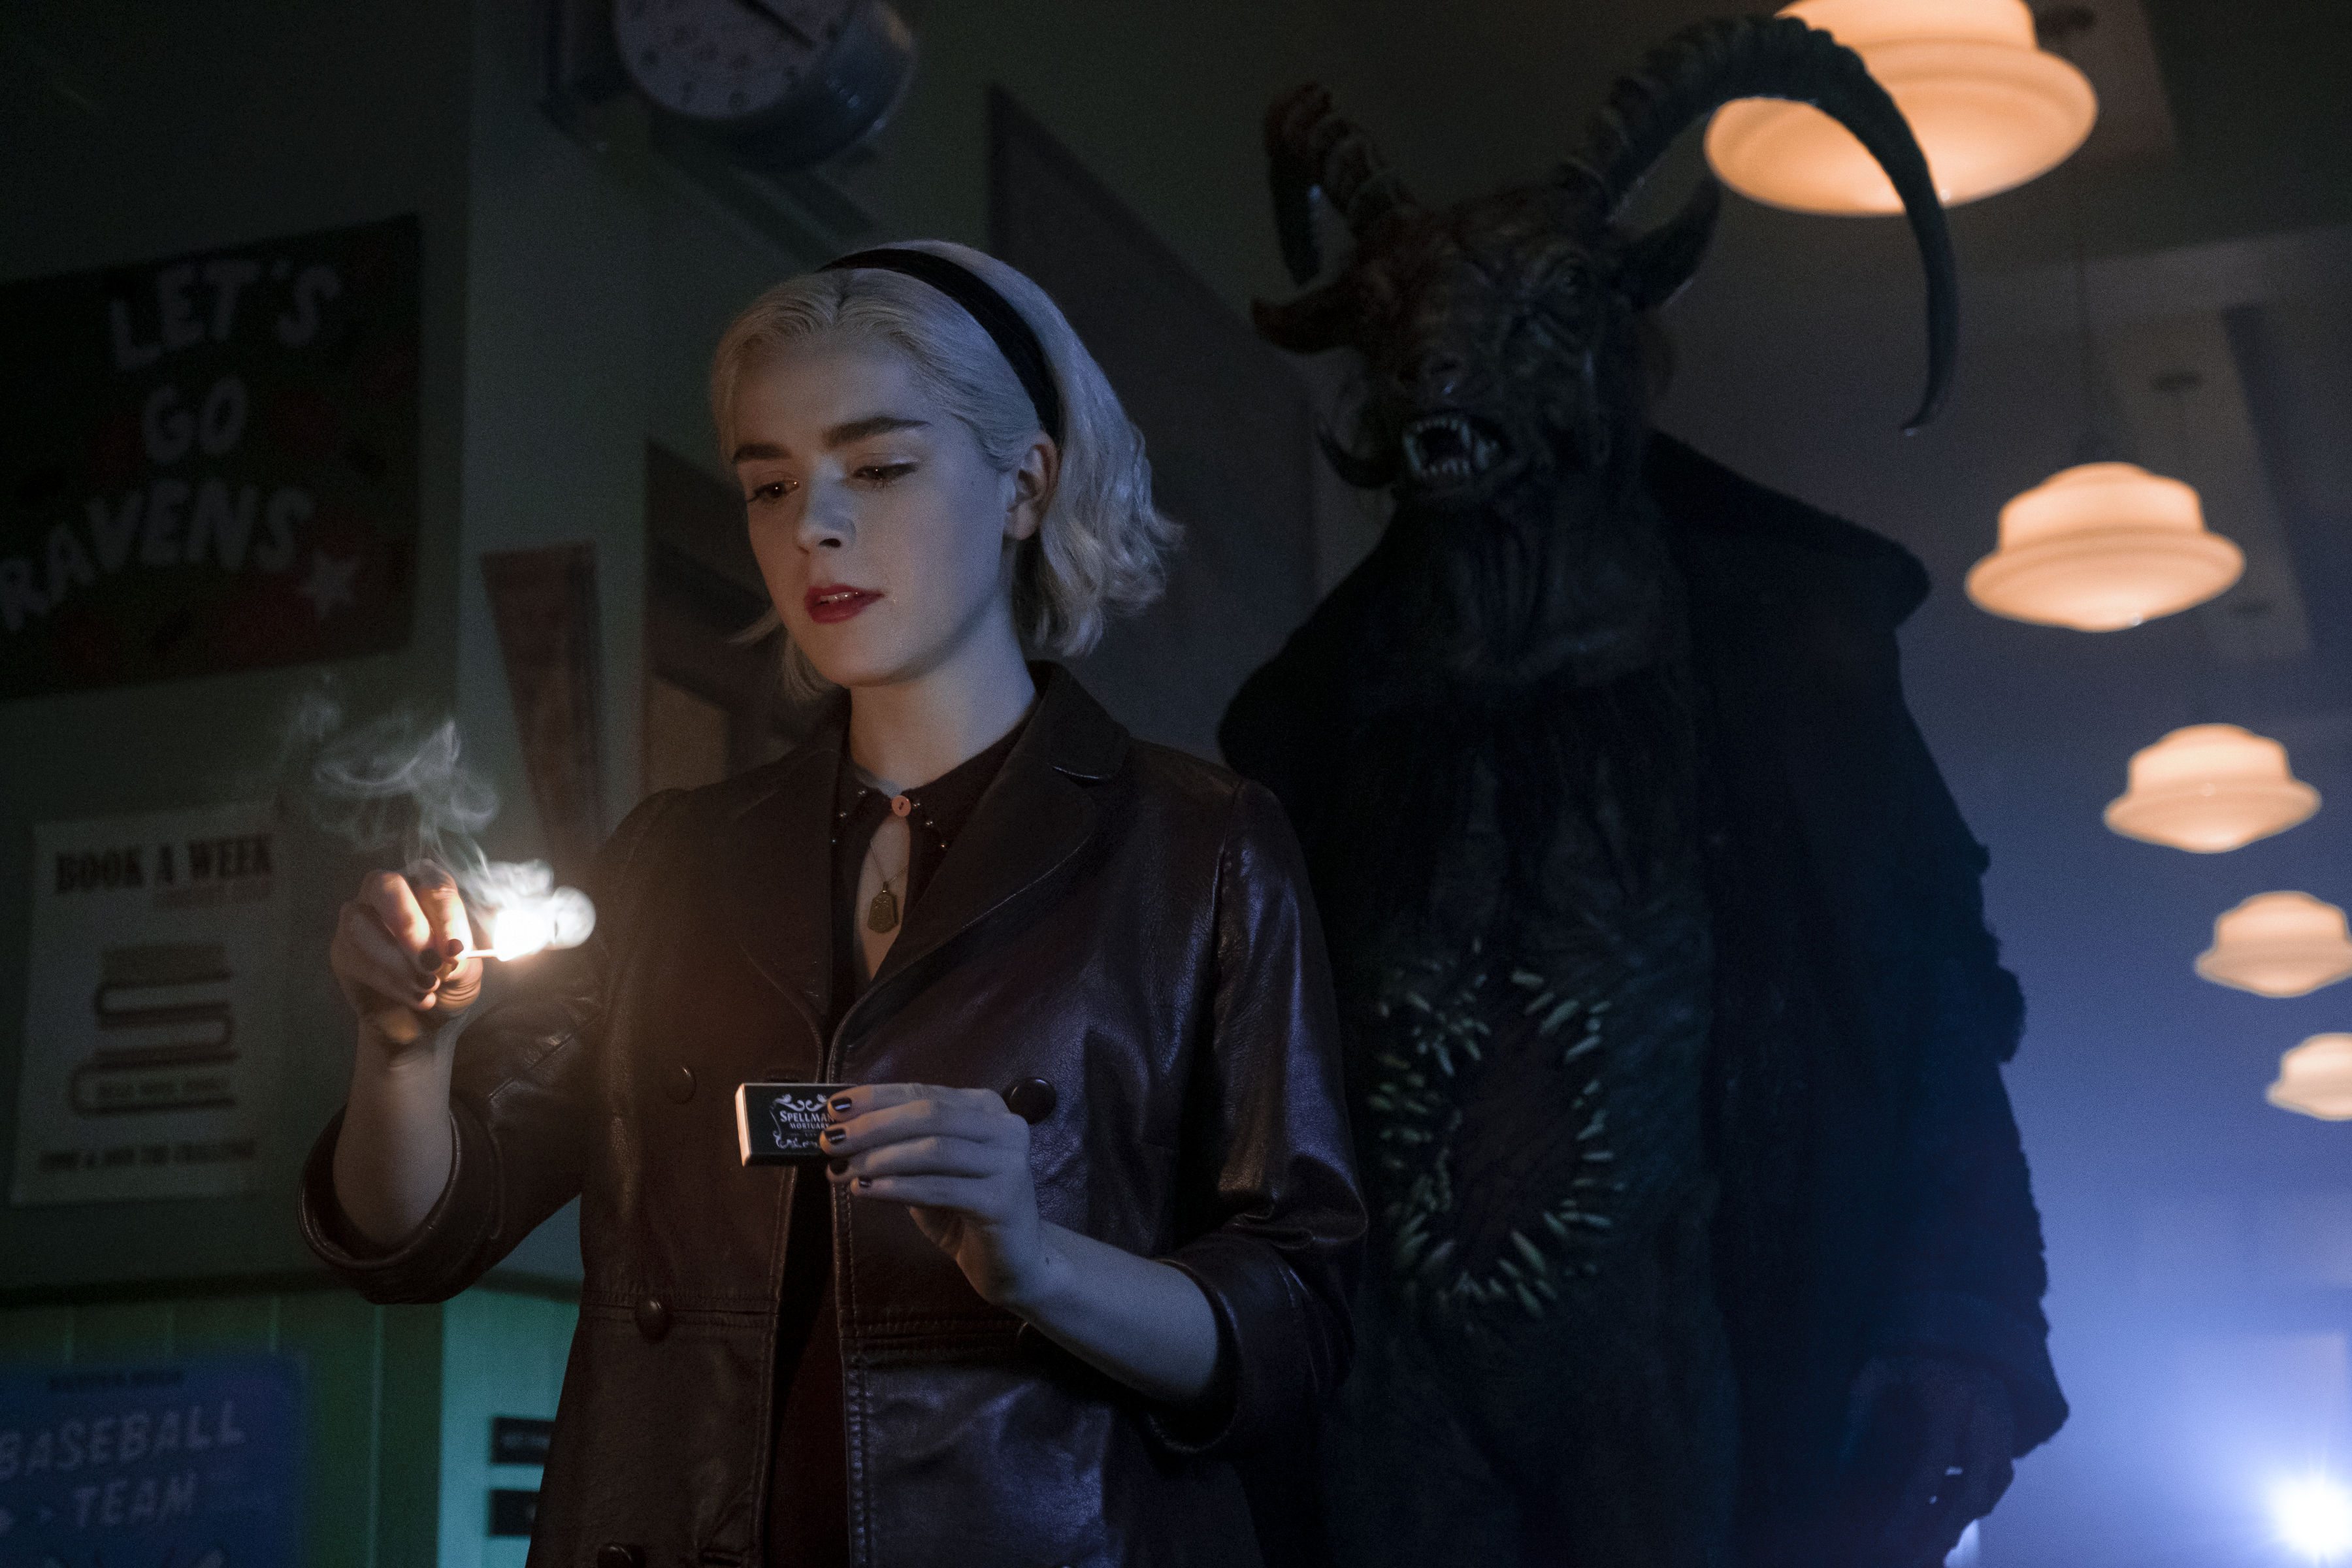 Sabrina heads down a dark path in new trailer for Chilling Adventures Part 2